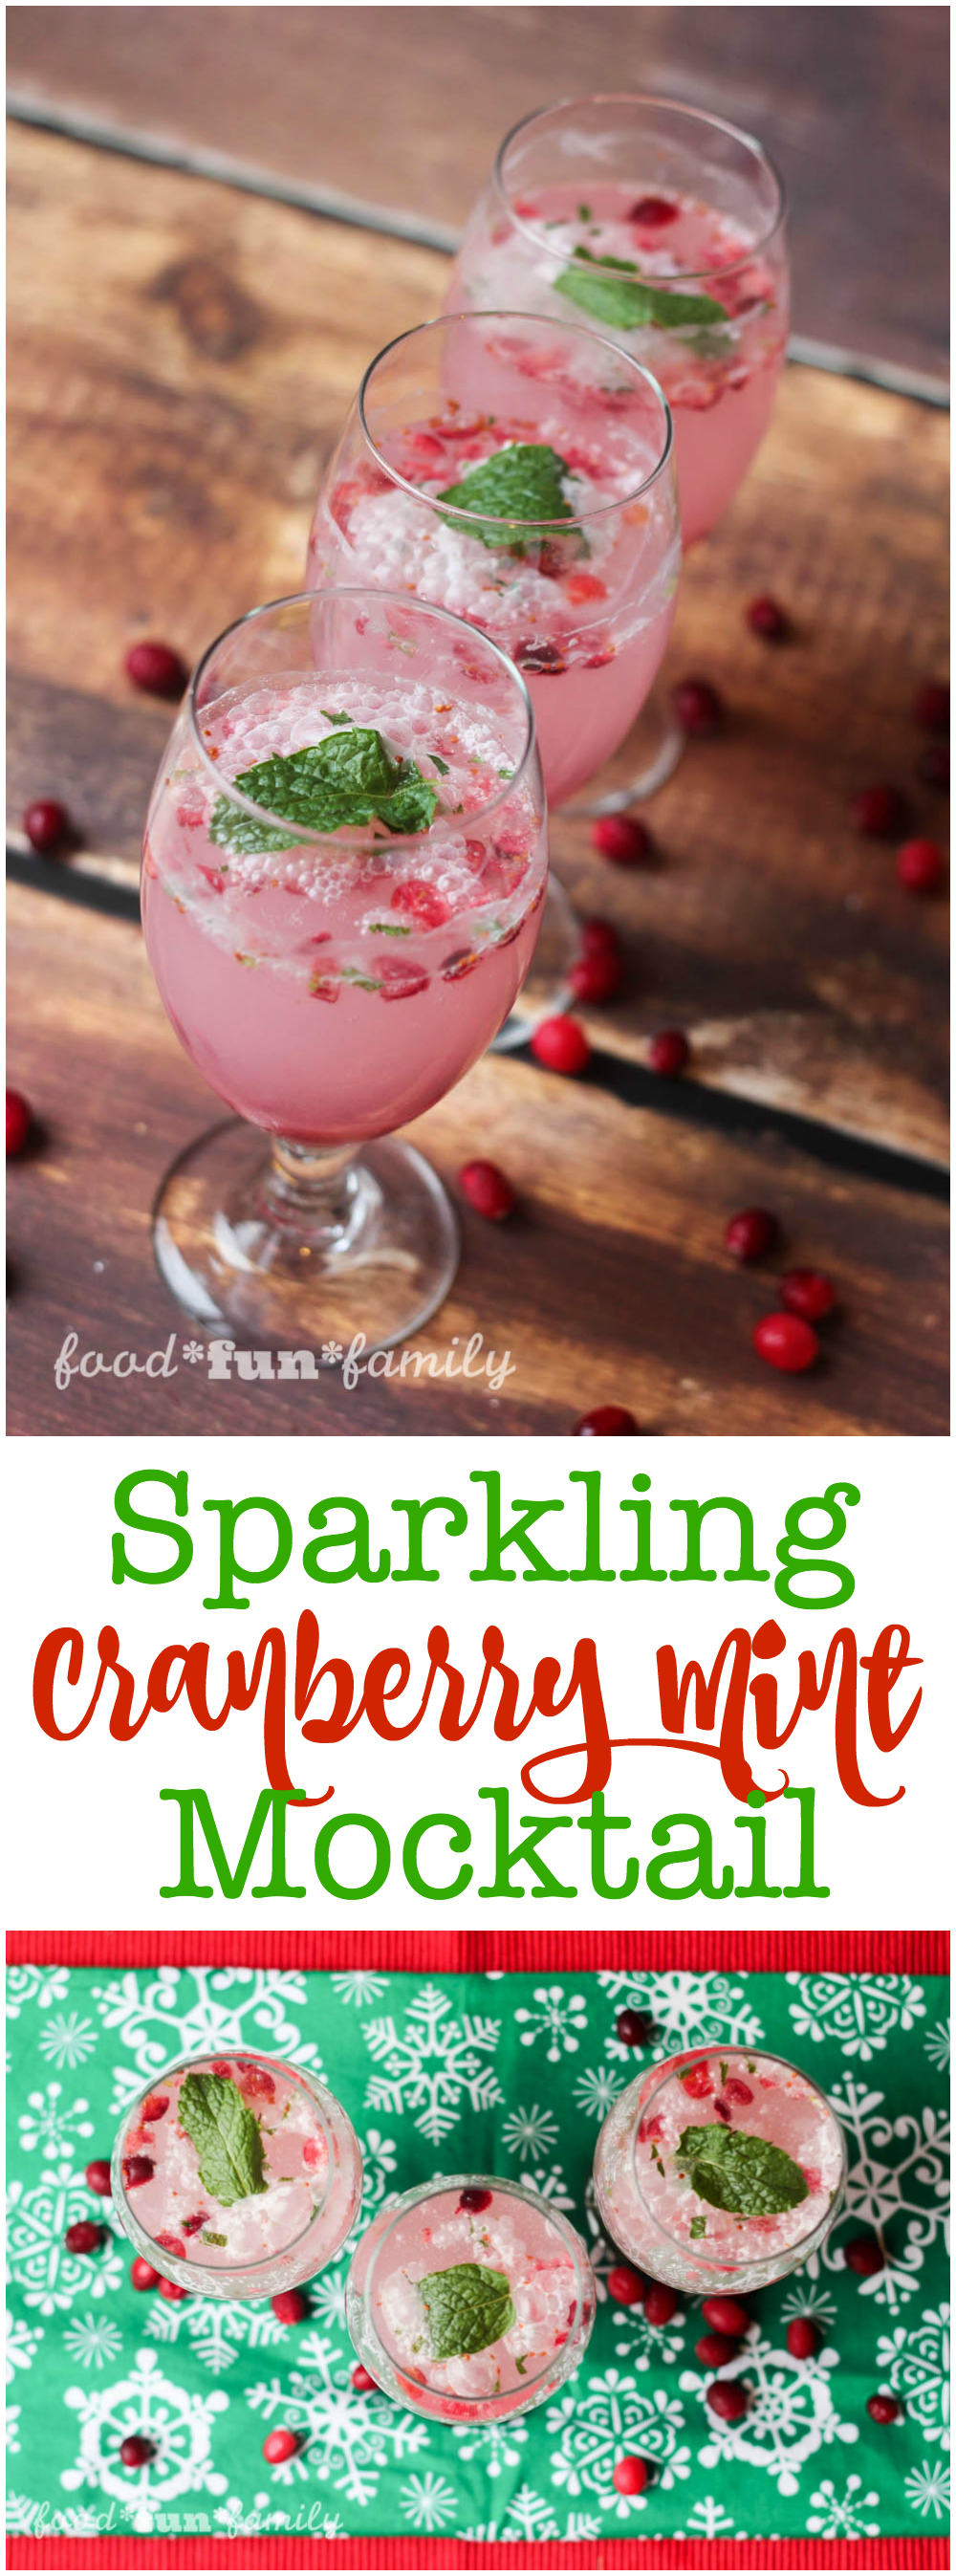 Sparkling Mint Cranberry mocktail recipe from Food Fun Family